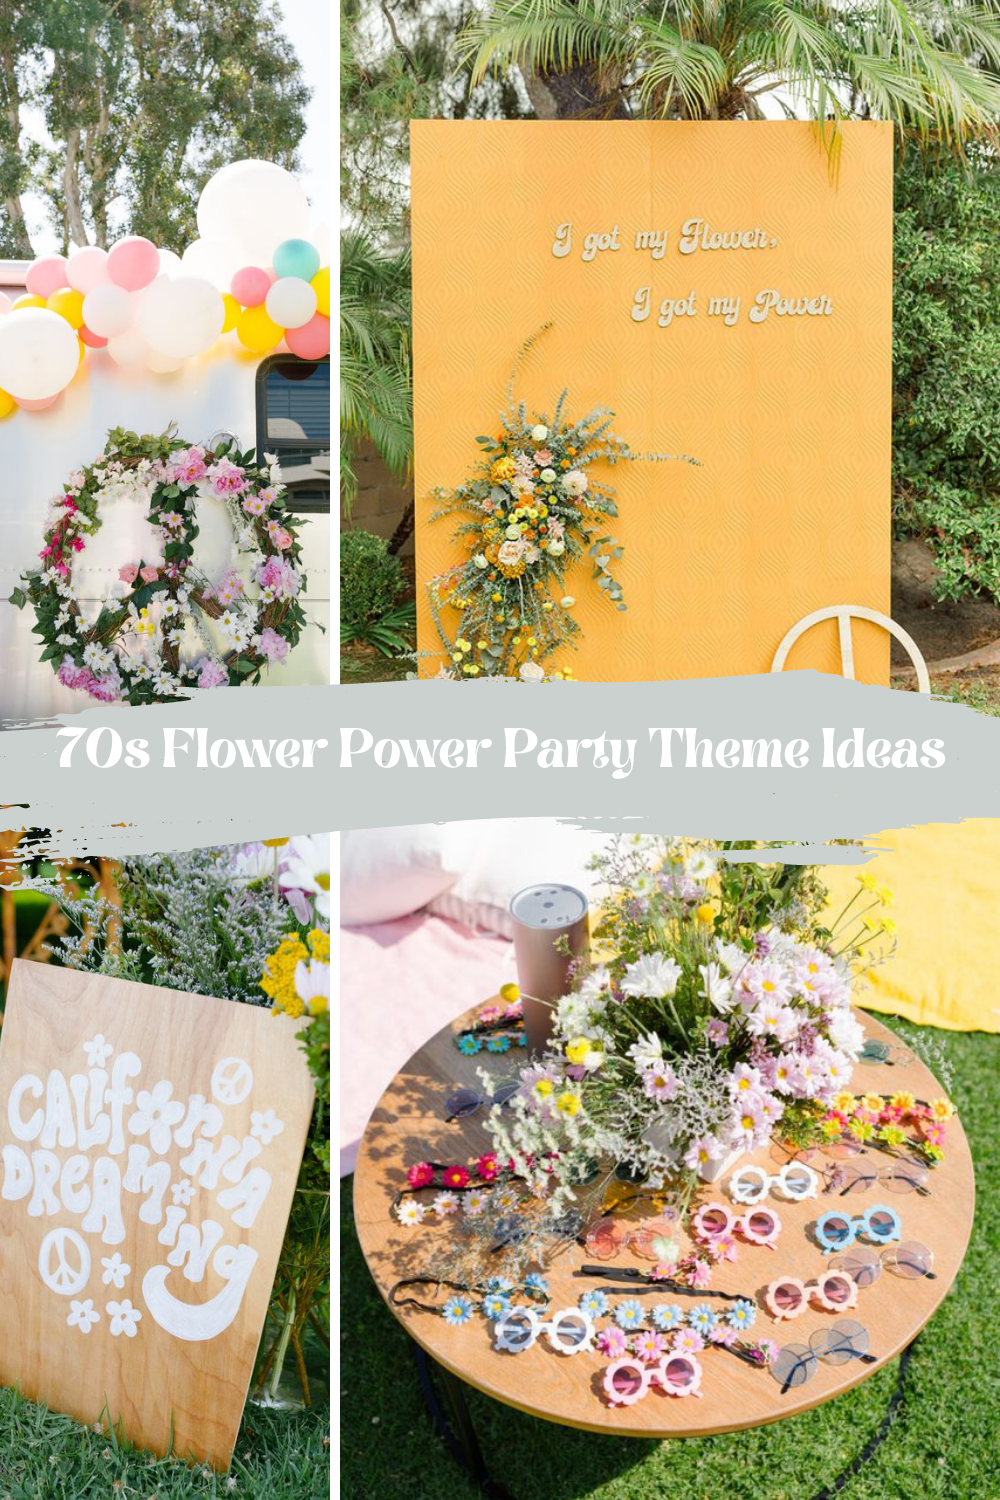 70s Flower Power Party